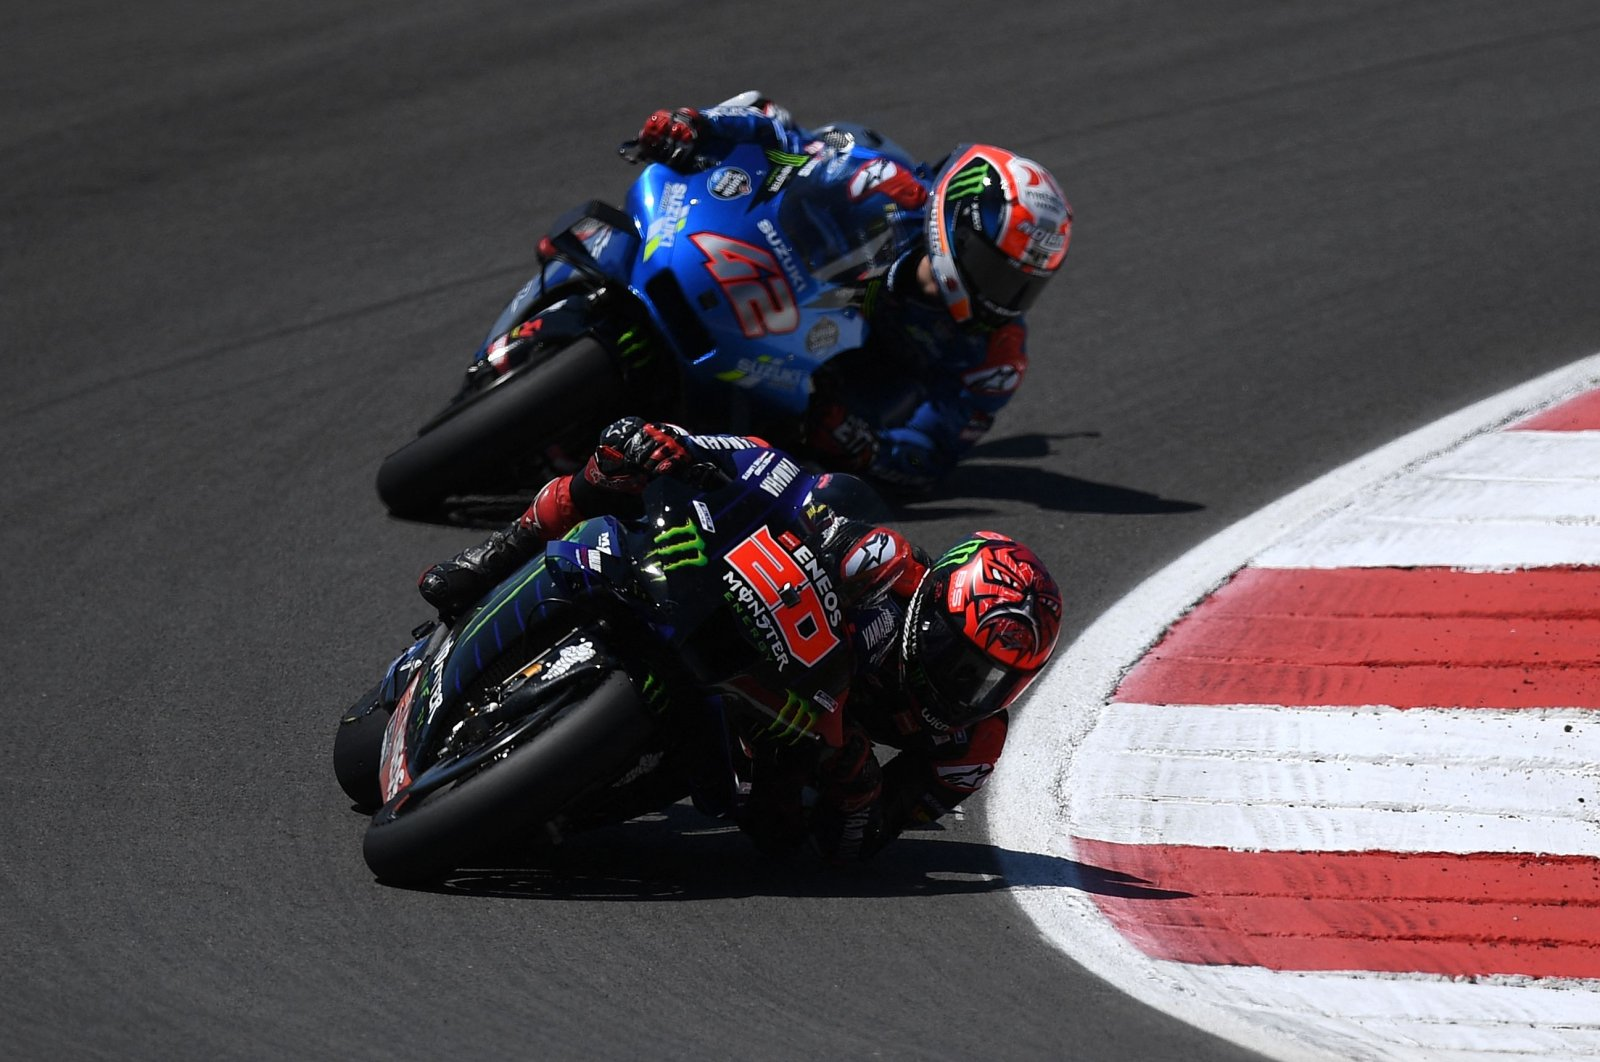 Monster Energy Yamaha MotoGP's French rider Fabio Quartararo and Team Suzuki Ecstar's Spanish rider Alex Rins (back) compete in the MotoGP Portuguese Grand Prix at the Algarve International Circuit, Portimao, Portugal, April 18, 2021. (AFP Photo)